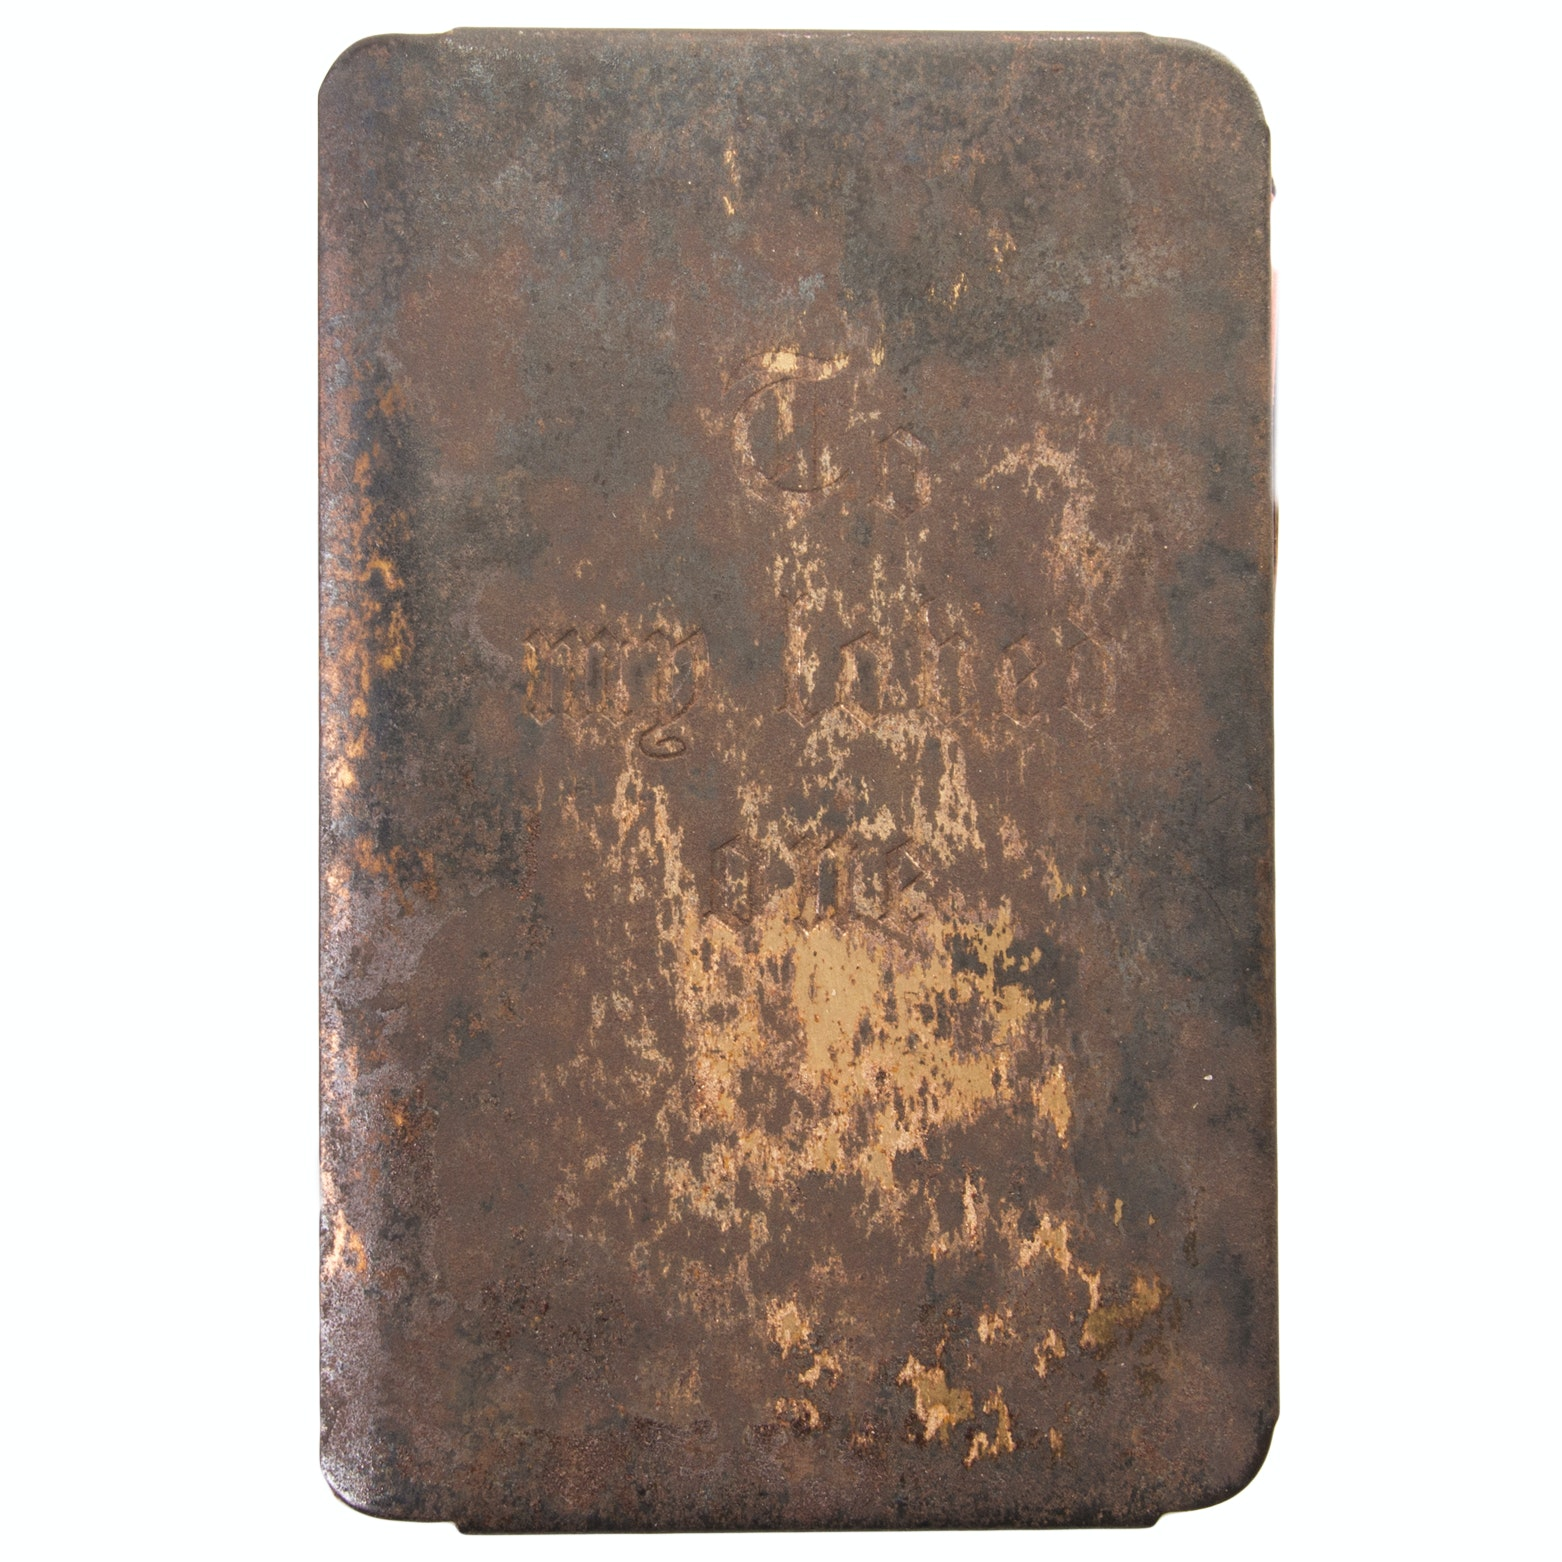 Vintage Soldier's Bible with Metal Cover